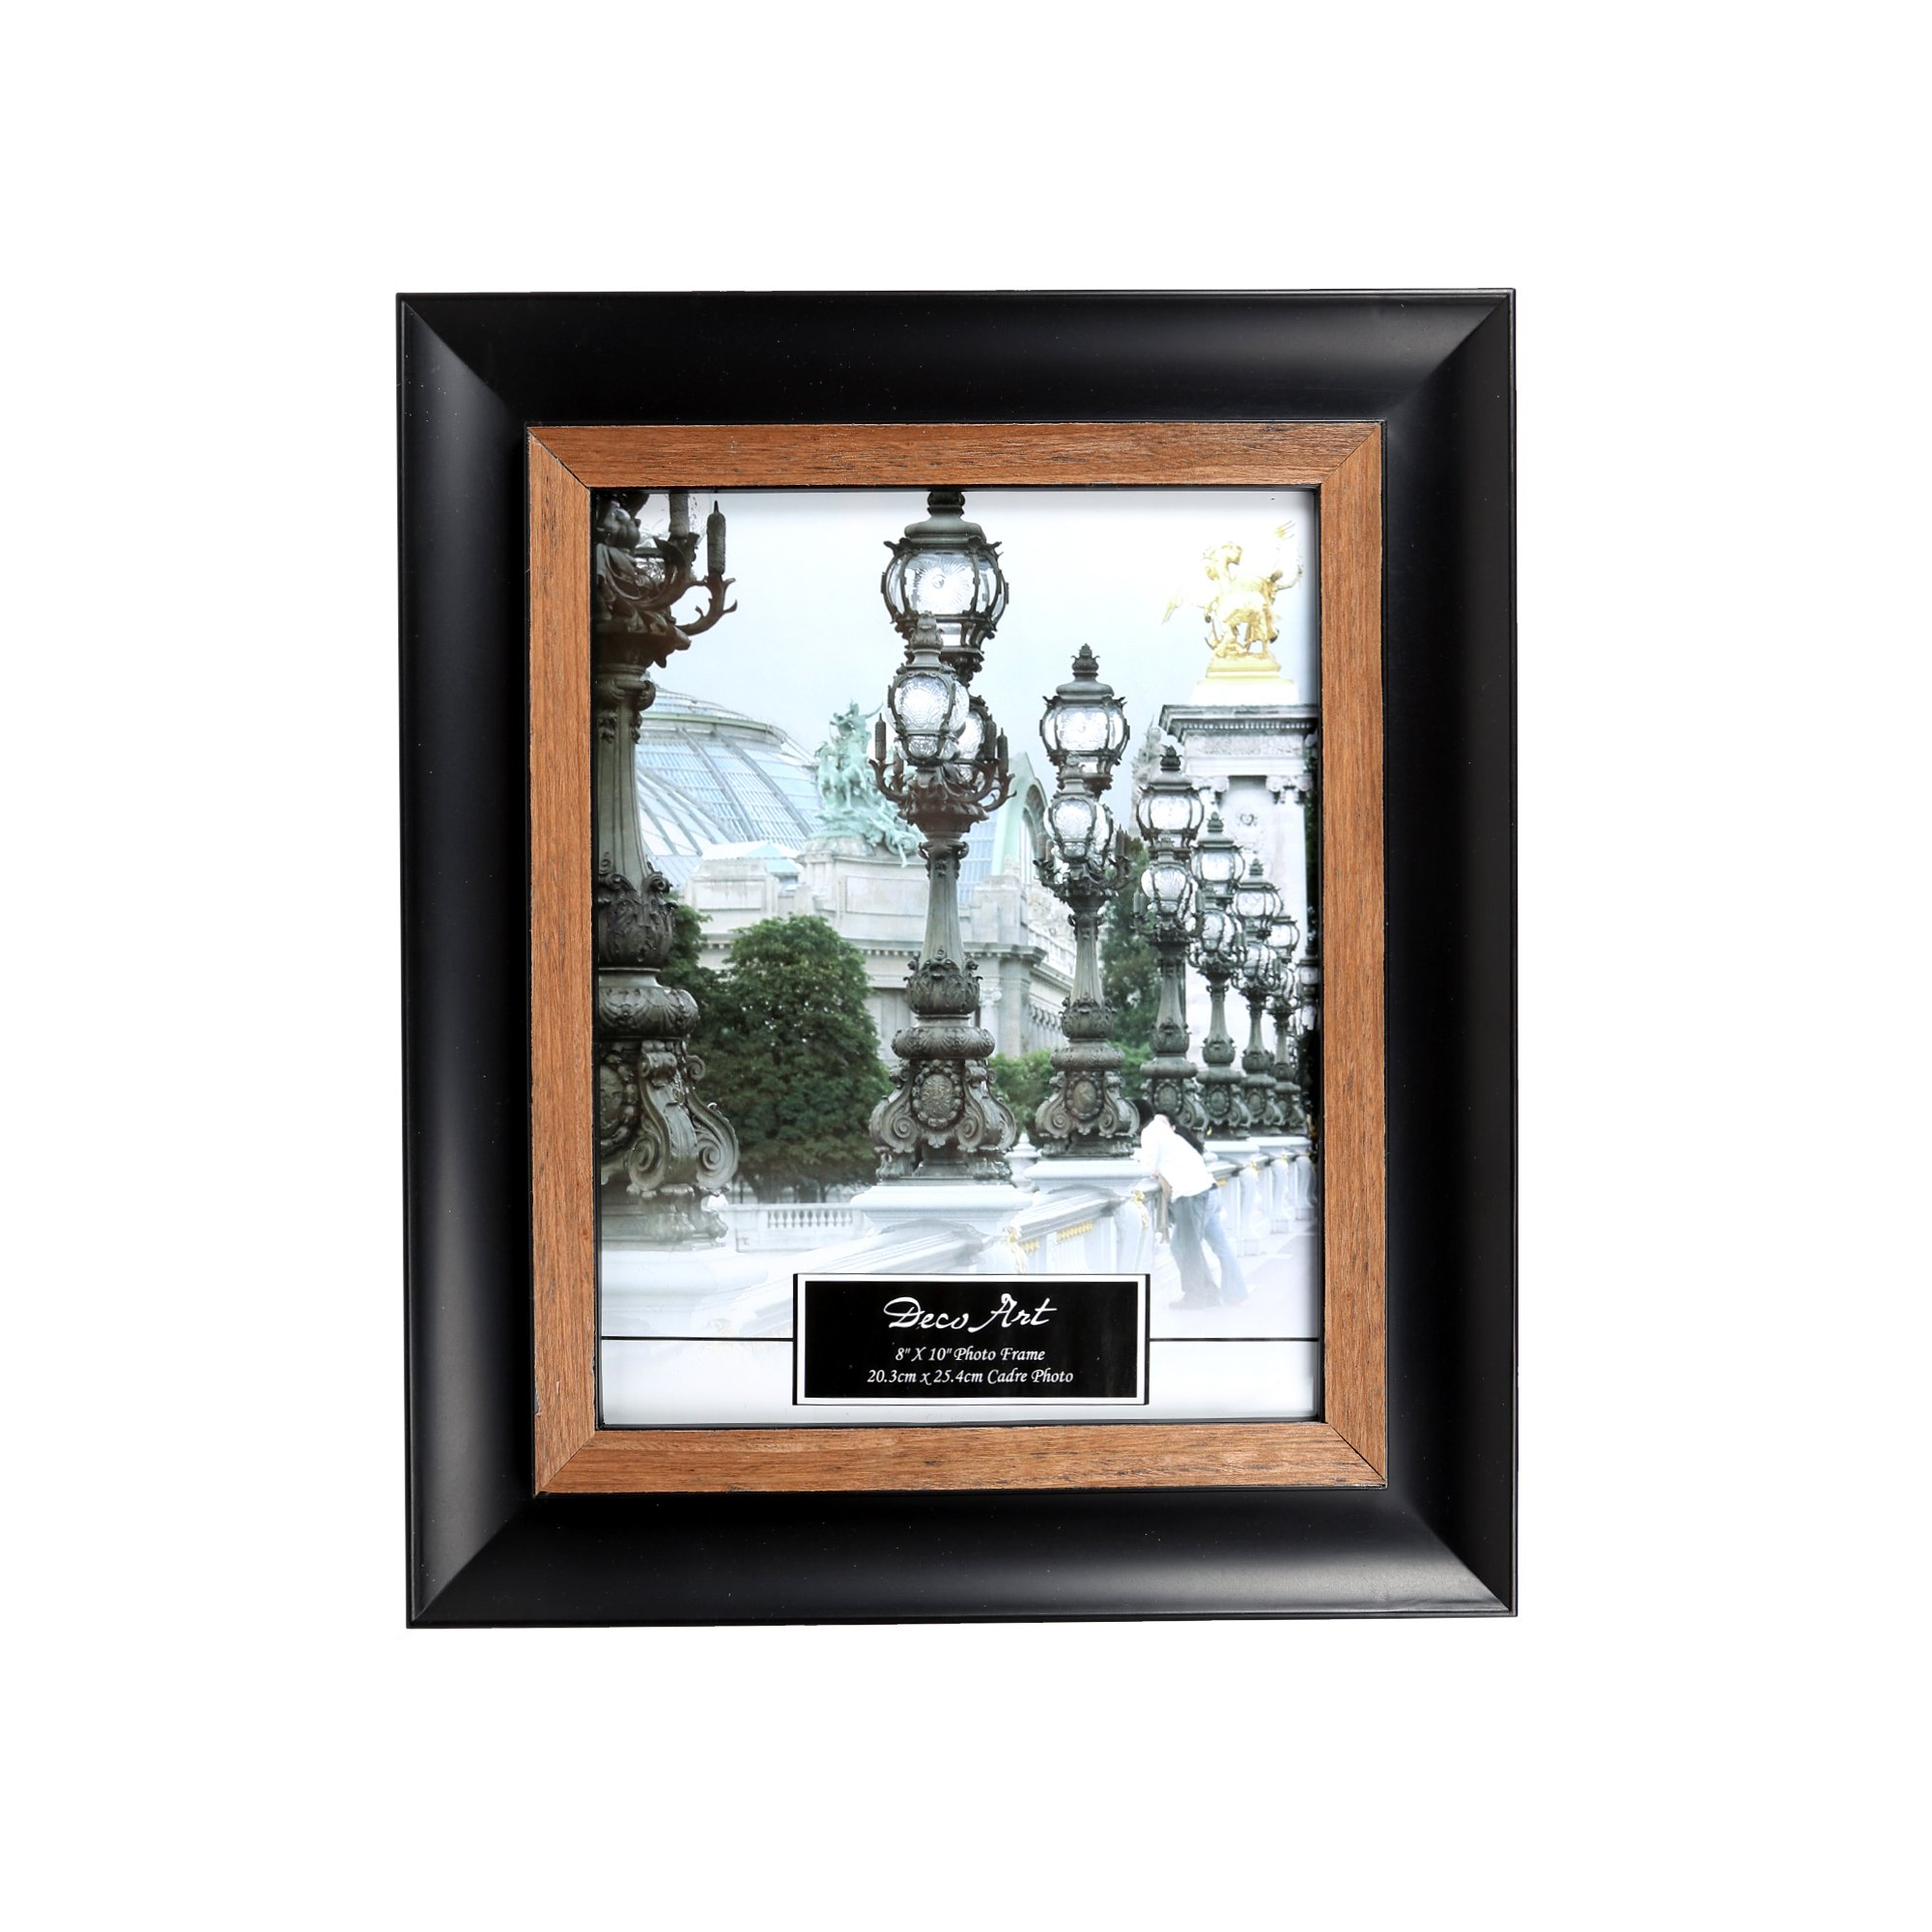 Truu Design Picture Frame, 8 x 10 inches Black, Beige